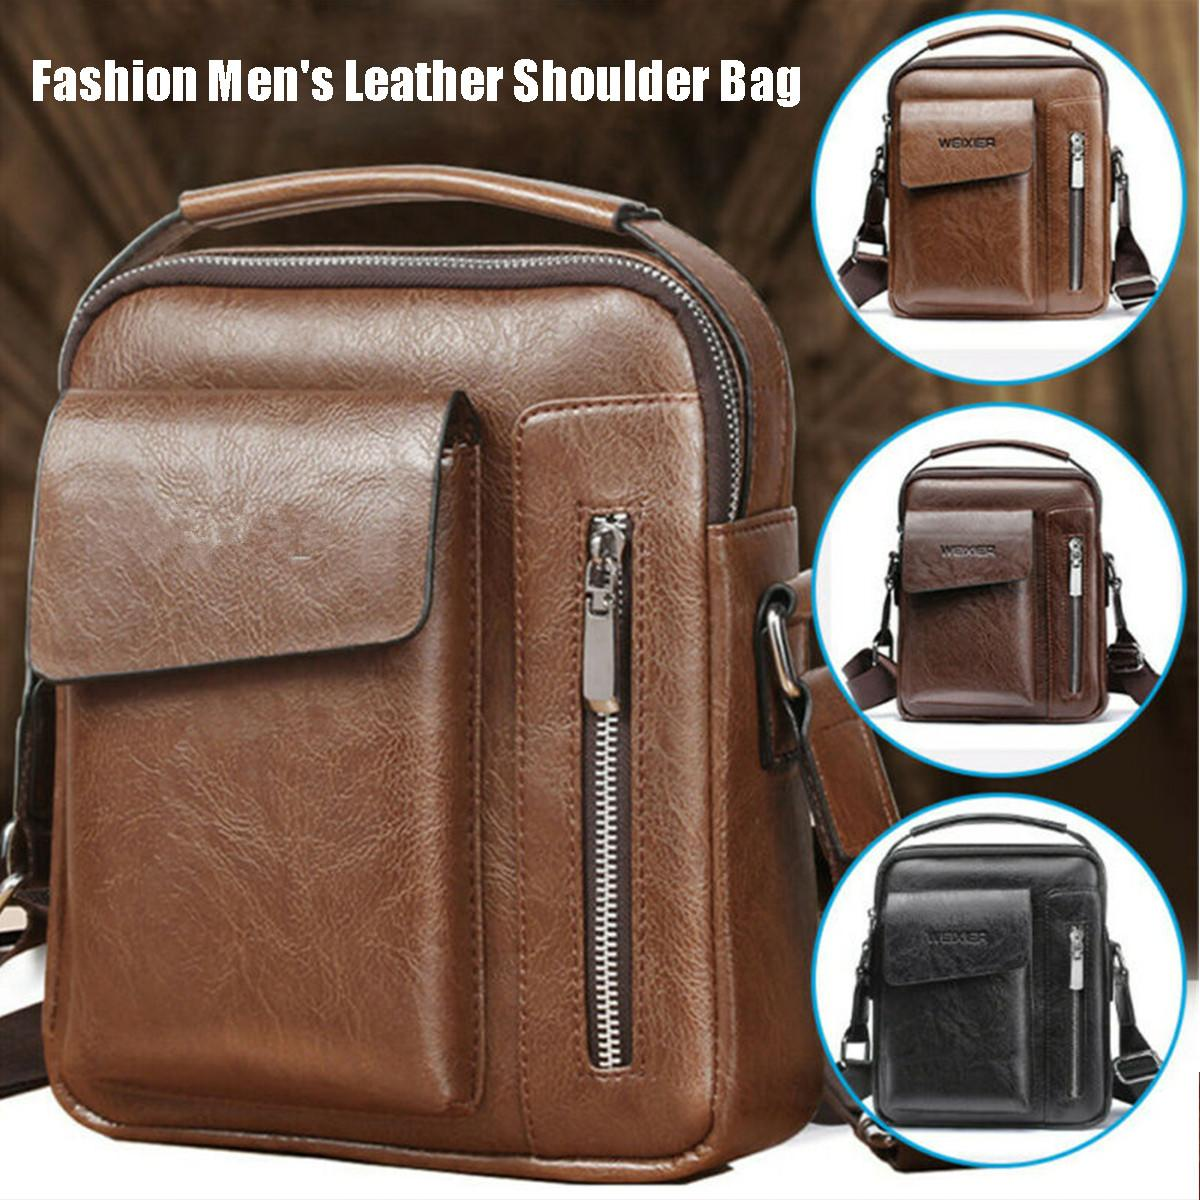 PU Leather Fashion Crossbody Bags Vintage Messenger Bag Men Shoulder Bag For Men Bags Retro Zipper Man Business Handbag